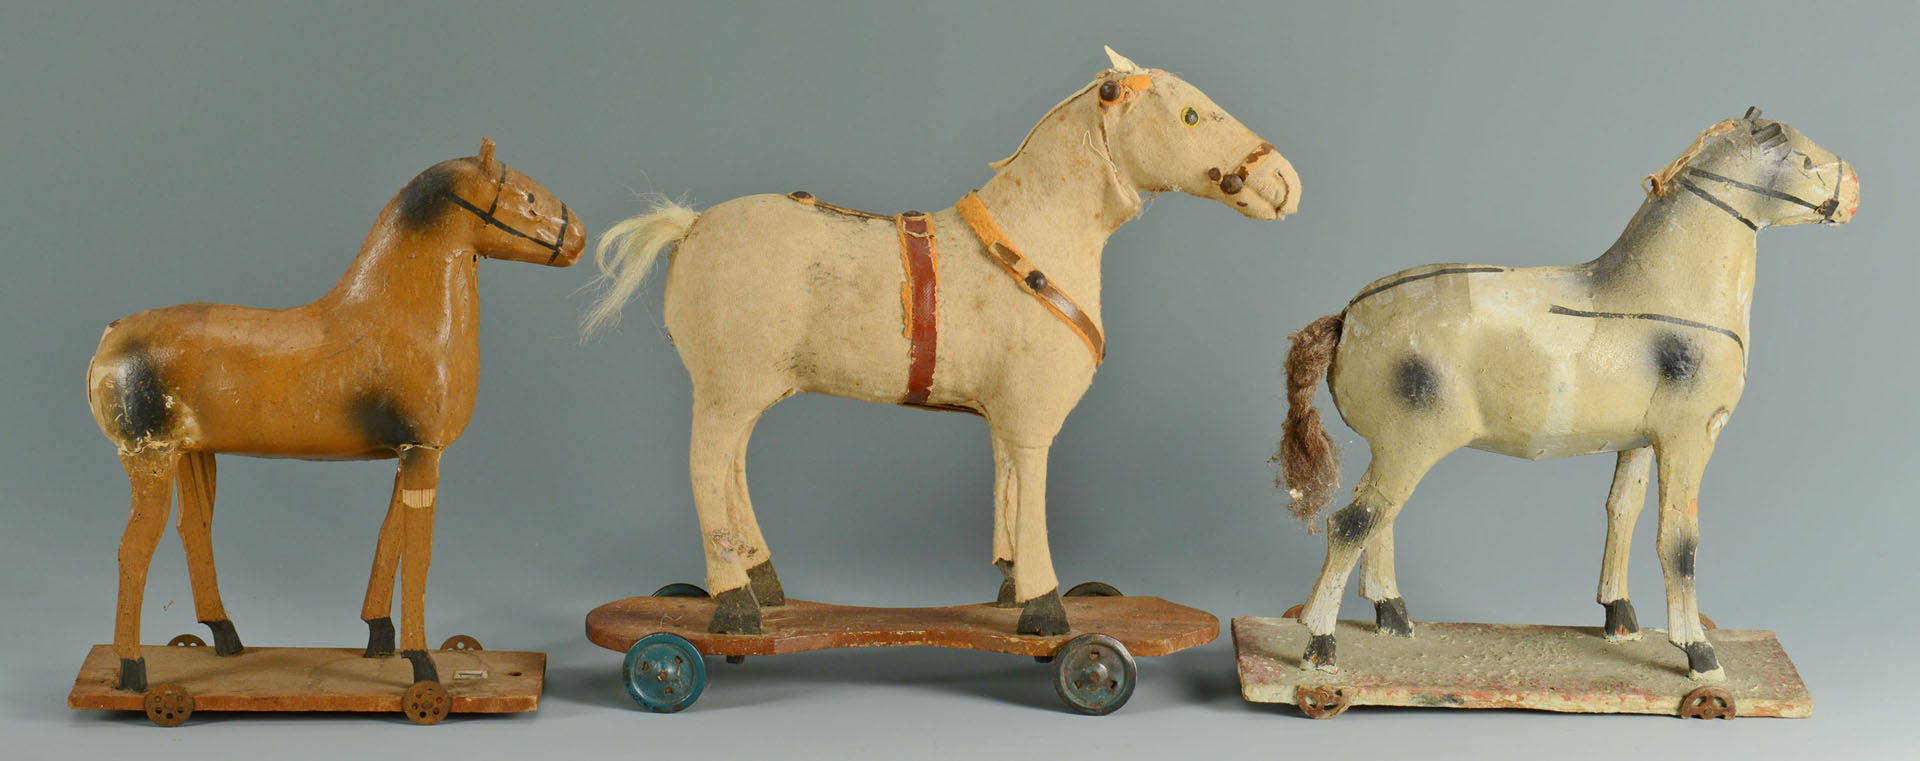 Lot 667: Group of 7 early pull toys and animals